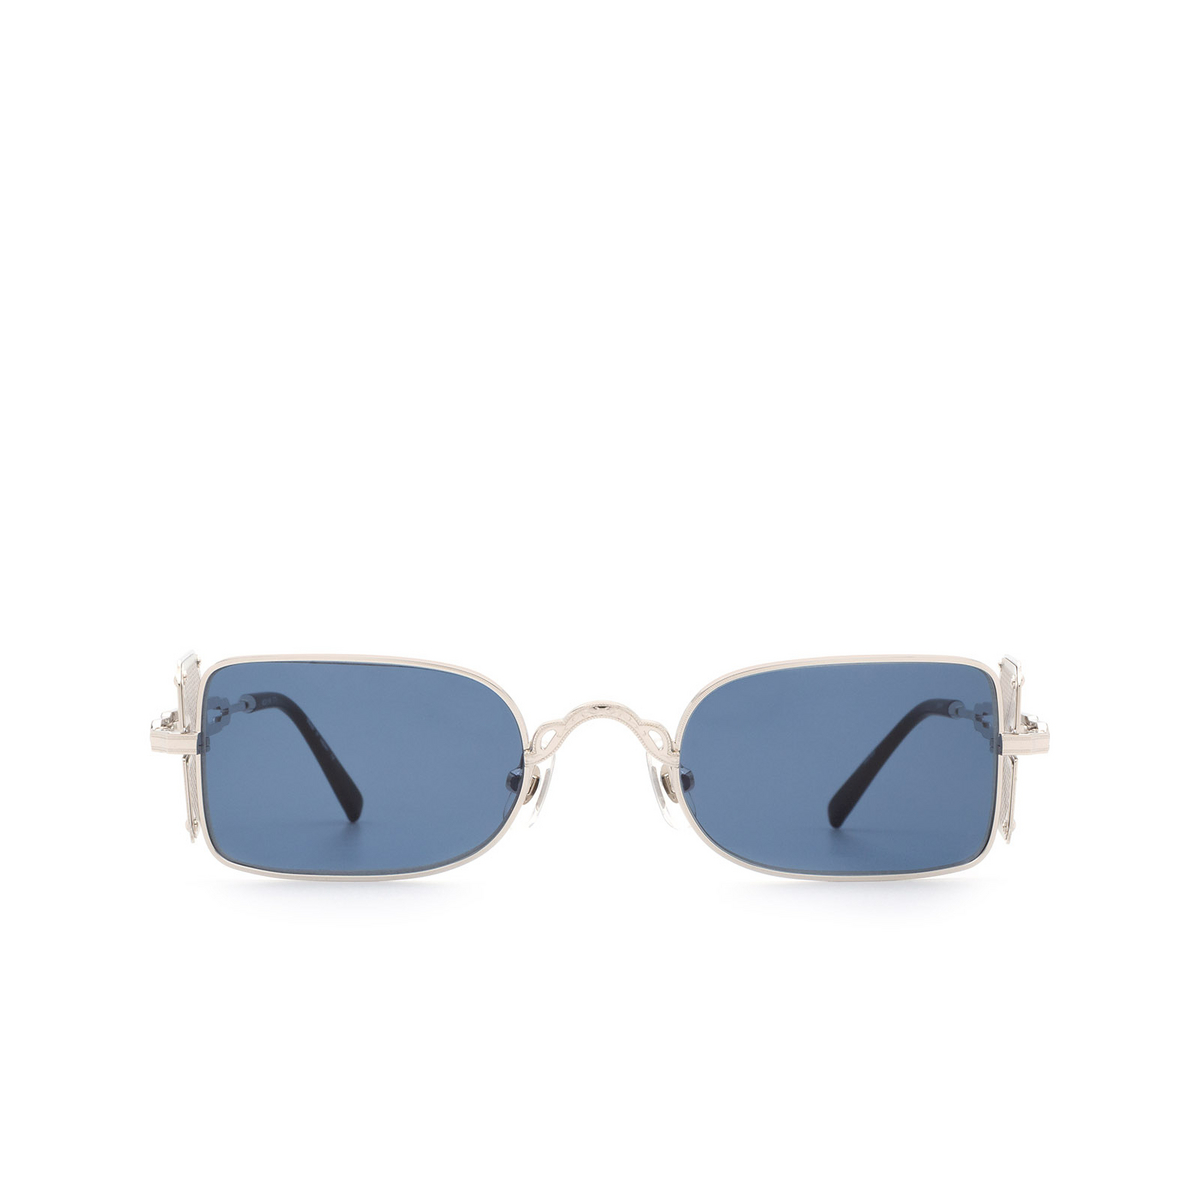 Matsuda® Rectangle Sunglasses: 10611H color Palladium White / Brushed Silver Pw-bs.